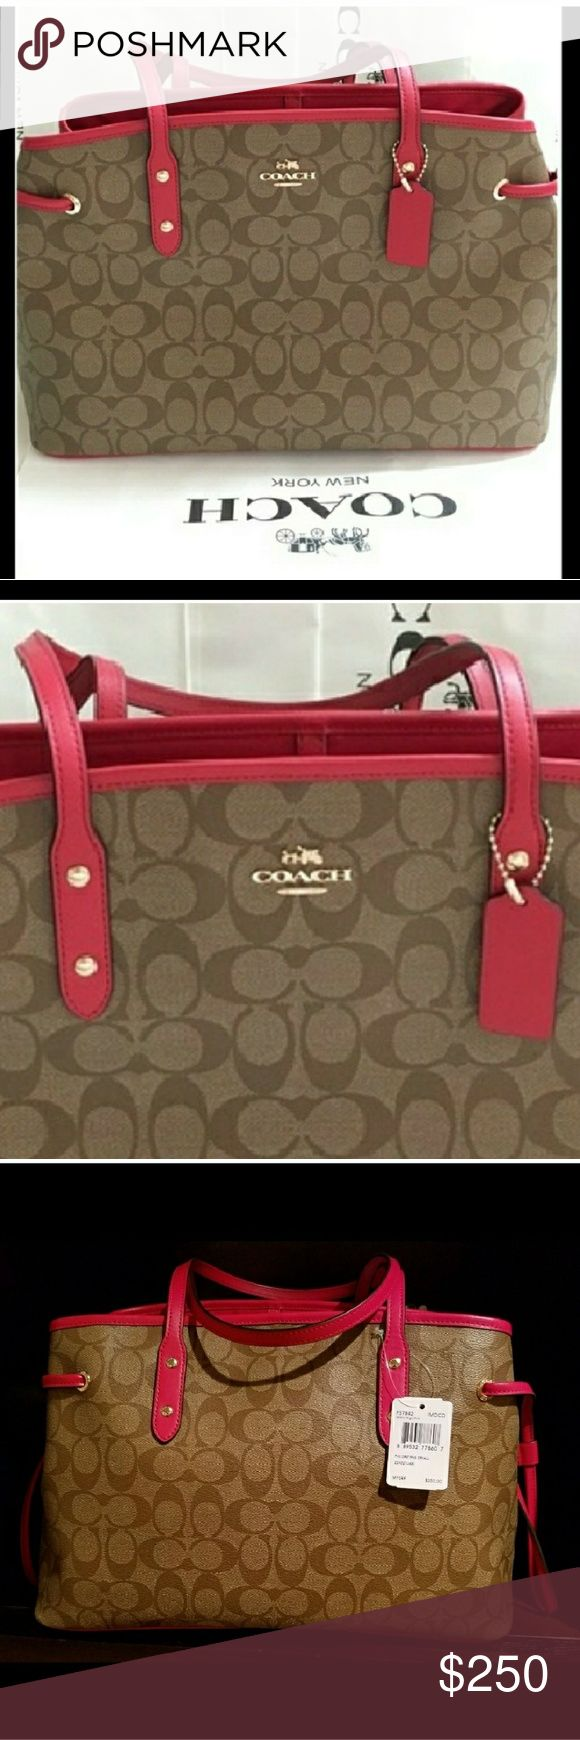 100%Authentic Coach Bag/ brand new w tags Less thru pay🅿al or Merc ----  Gorgeous 100% authentic Coach handbag brand new with tags never used ! Perfect for spring & summer. Also comes with dust bag. Very roomy. I will specify the dimensions in a short while. +VS FREEBIES all brand new! With any purchase! Coach Bags Satchels